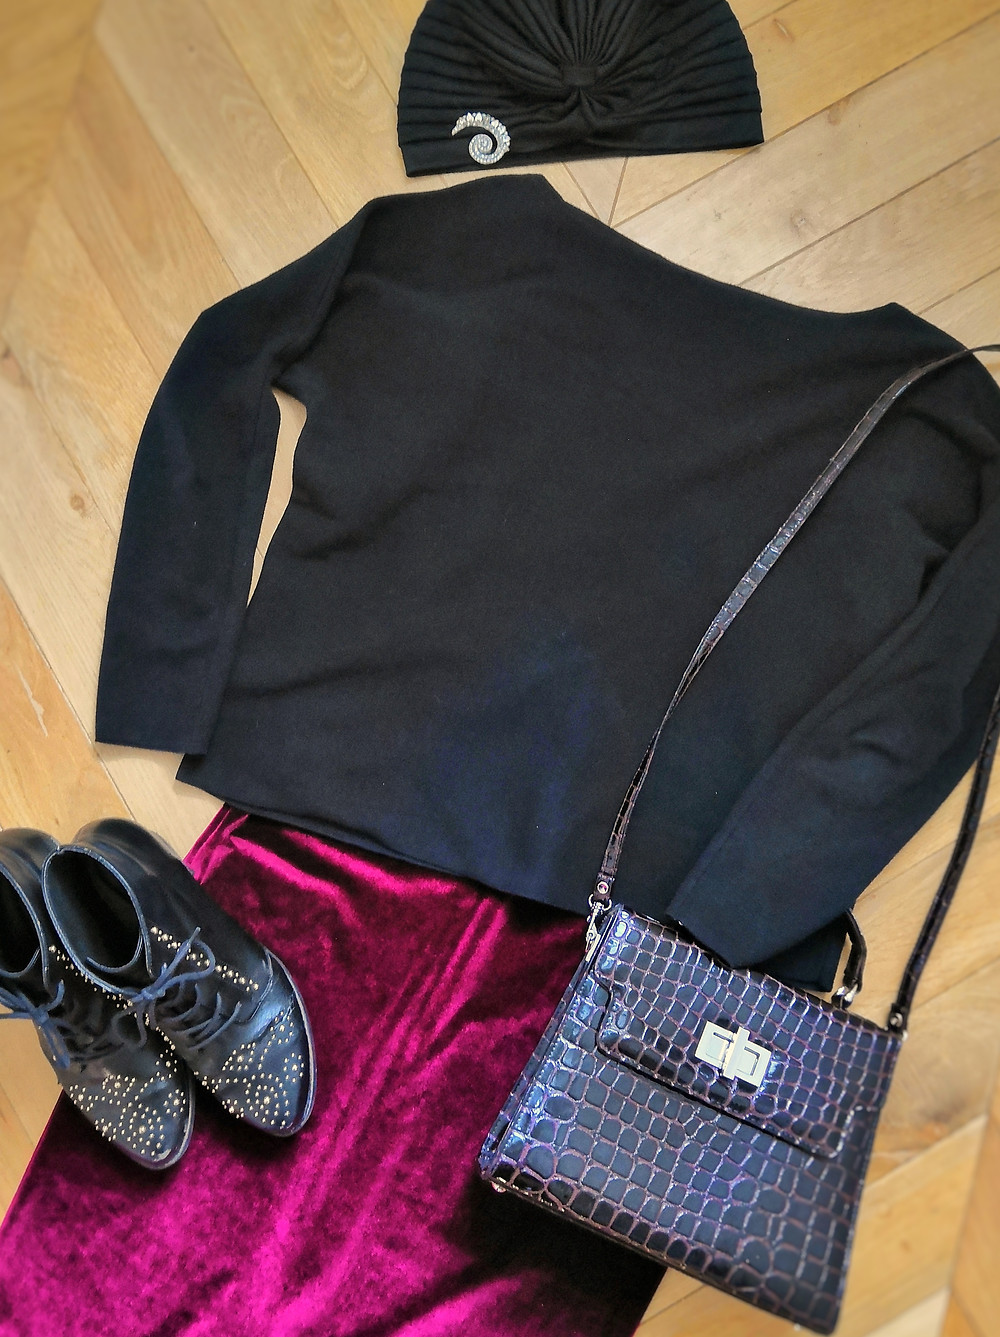 Vintage inspired flatlay outfit with boots, bag, sweater and velvet pencil skirt